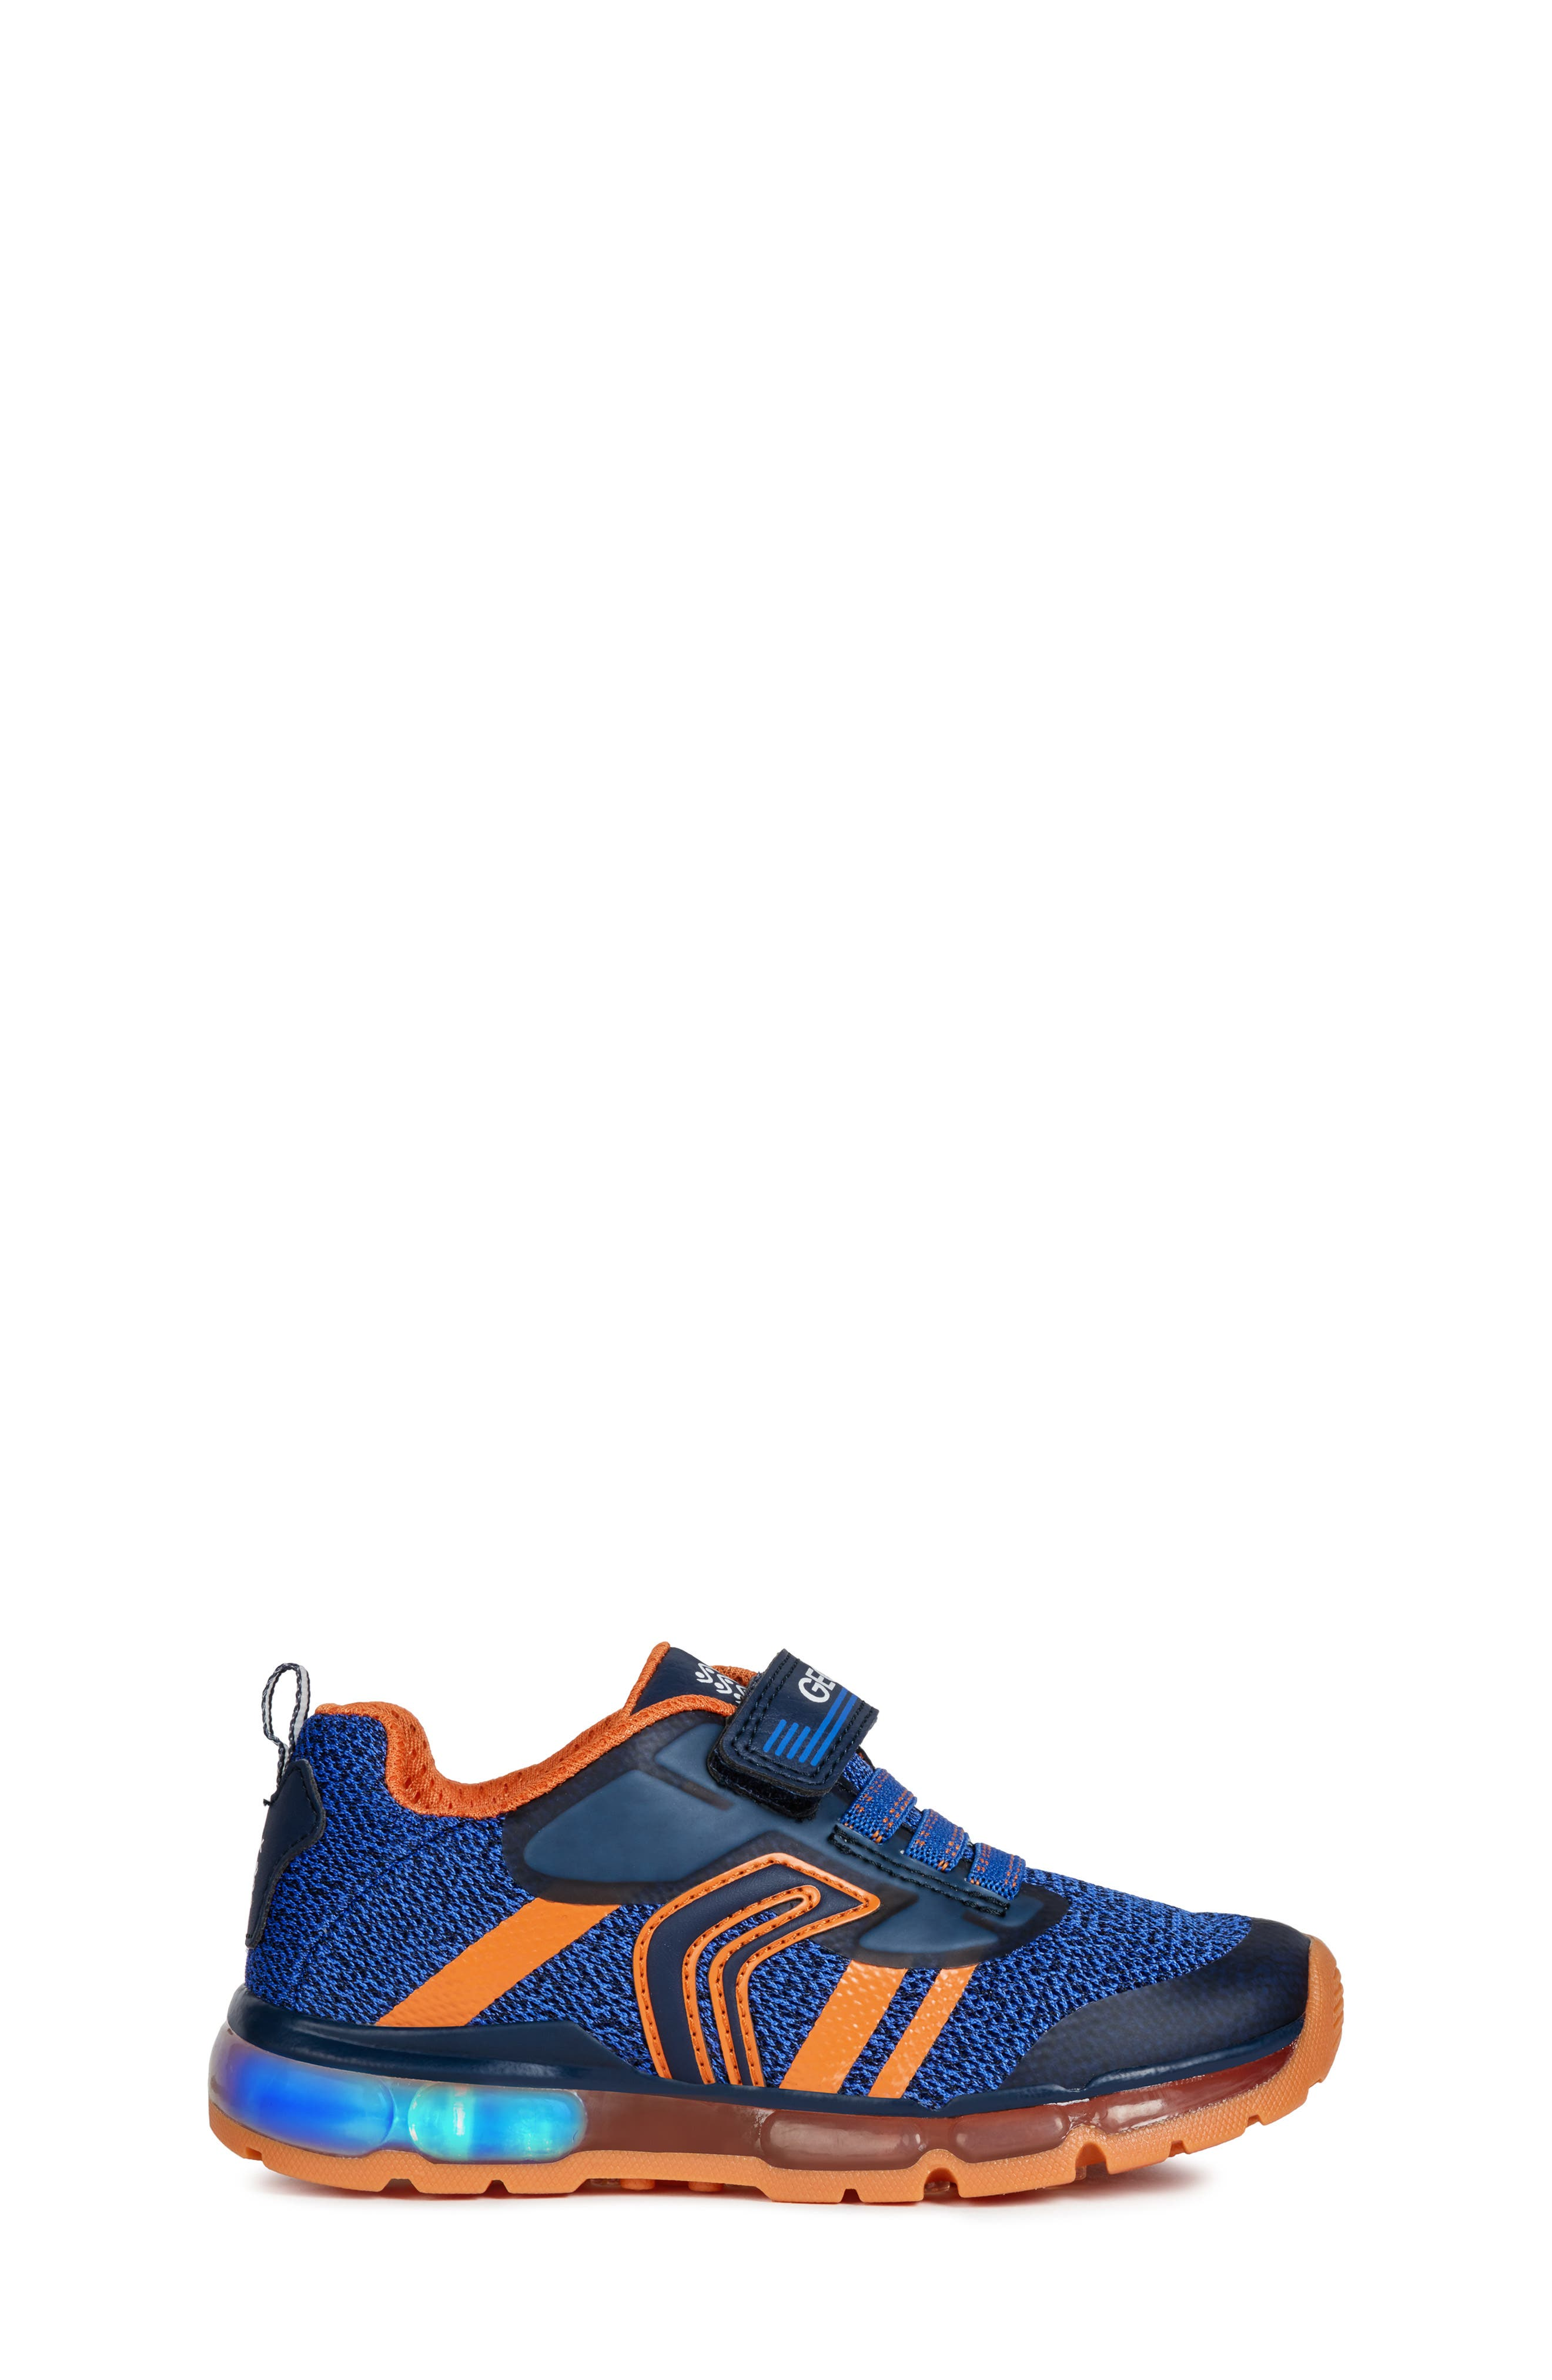 GEOX, Android 19 Light-Up Sneaker, Alternate thumbnail 3, color, NAVY/ ORANGE